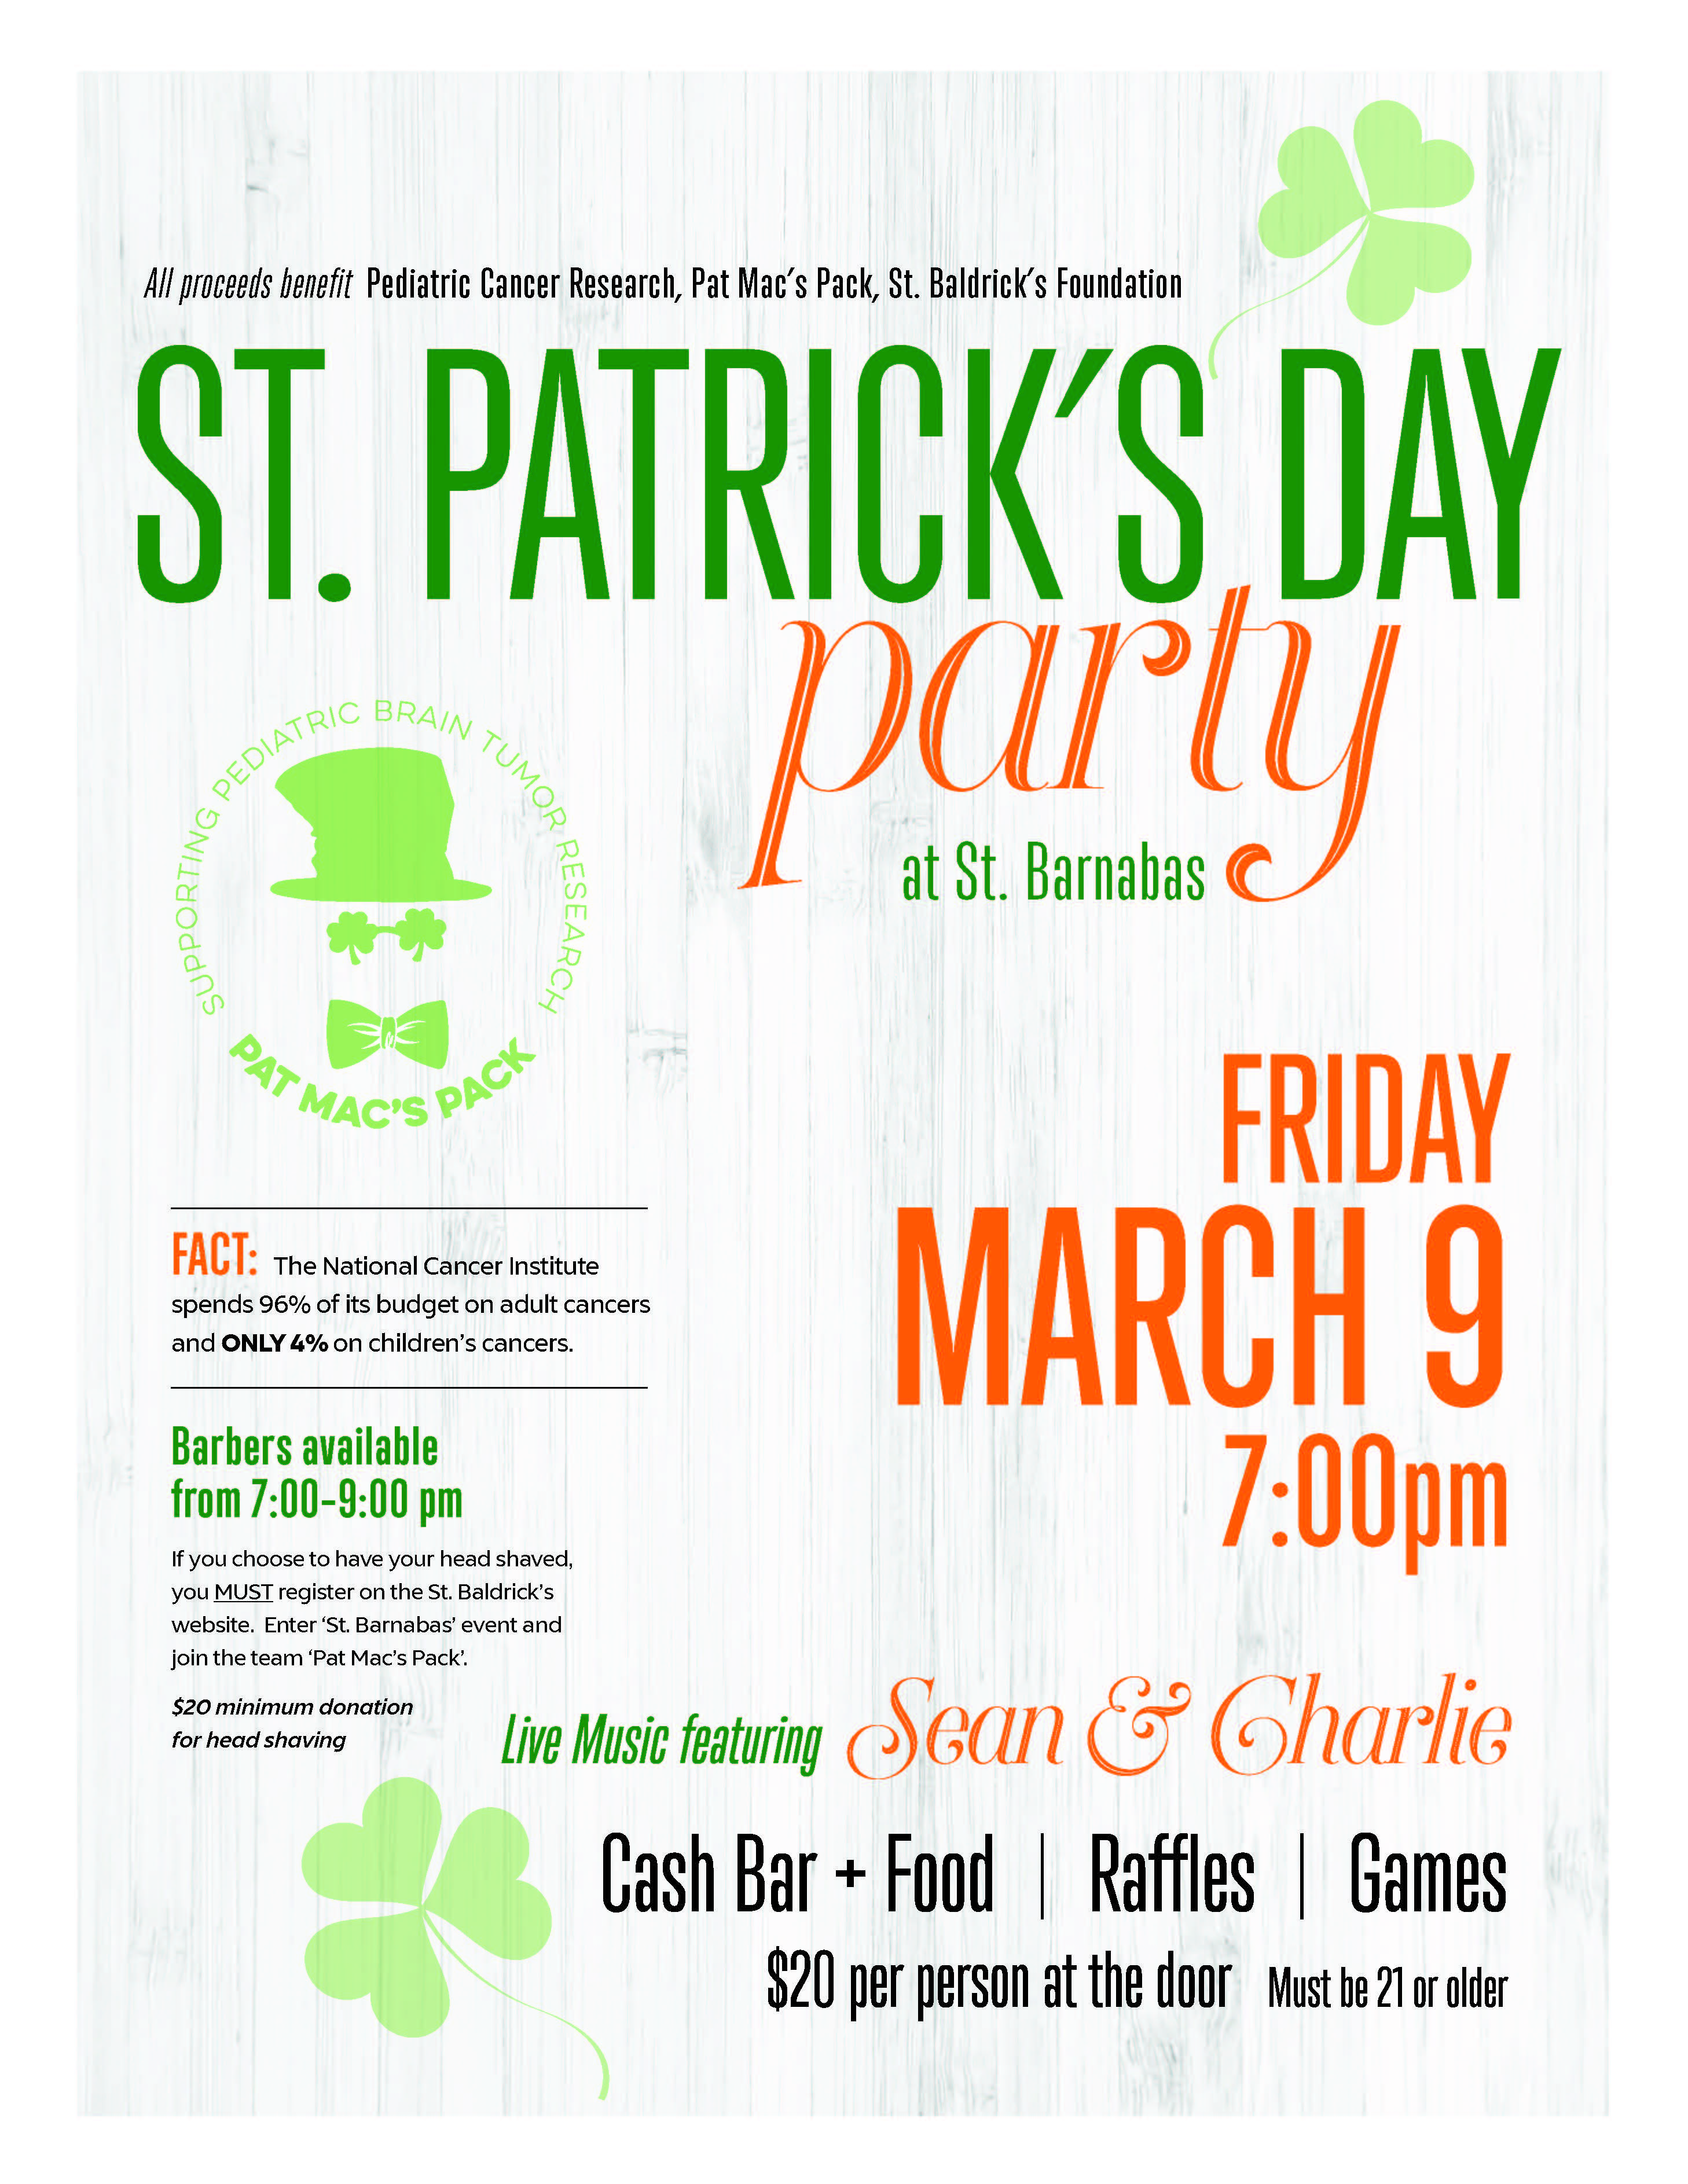 Join Us For Our Annual St Patrick S Day Party To Kick Off The Holiday On Friday March 9 Night Will Feature Live Music From Sean Charlie